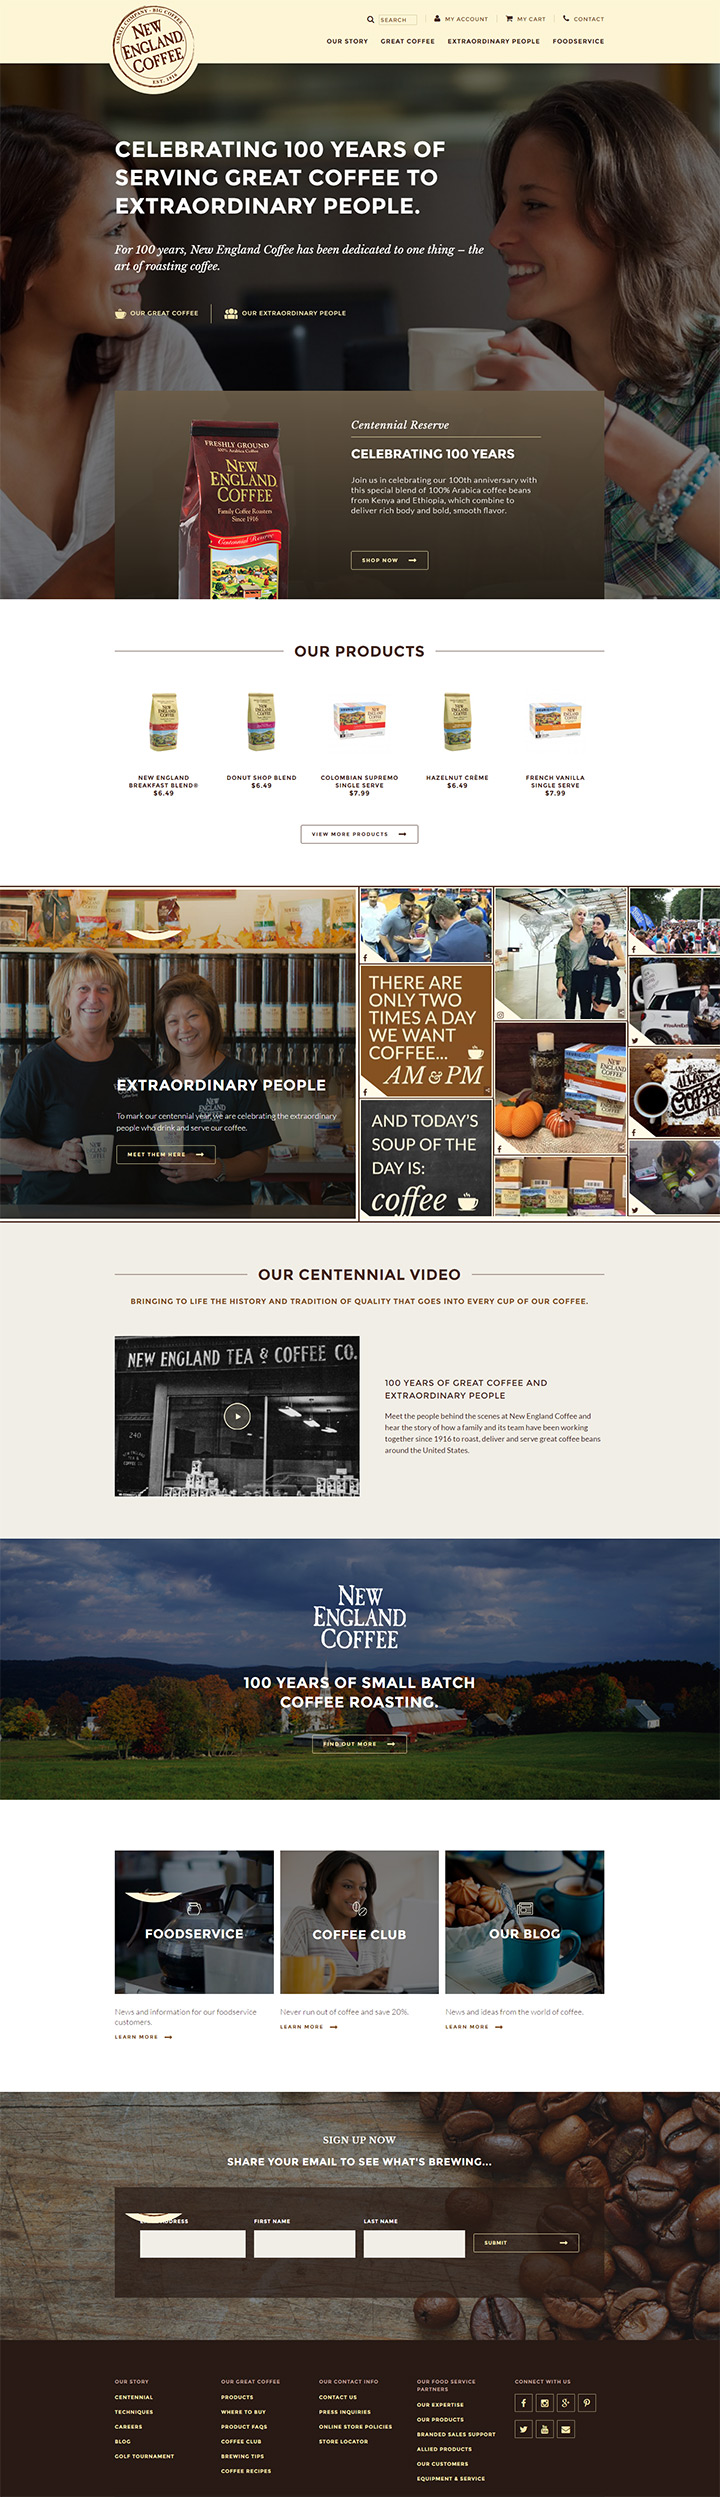 ne coffee website